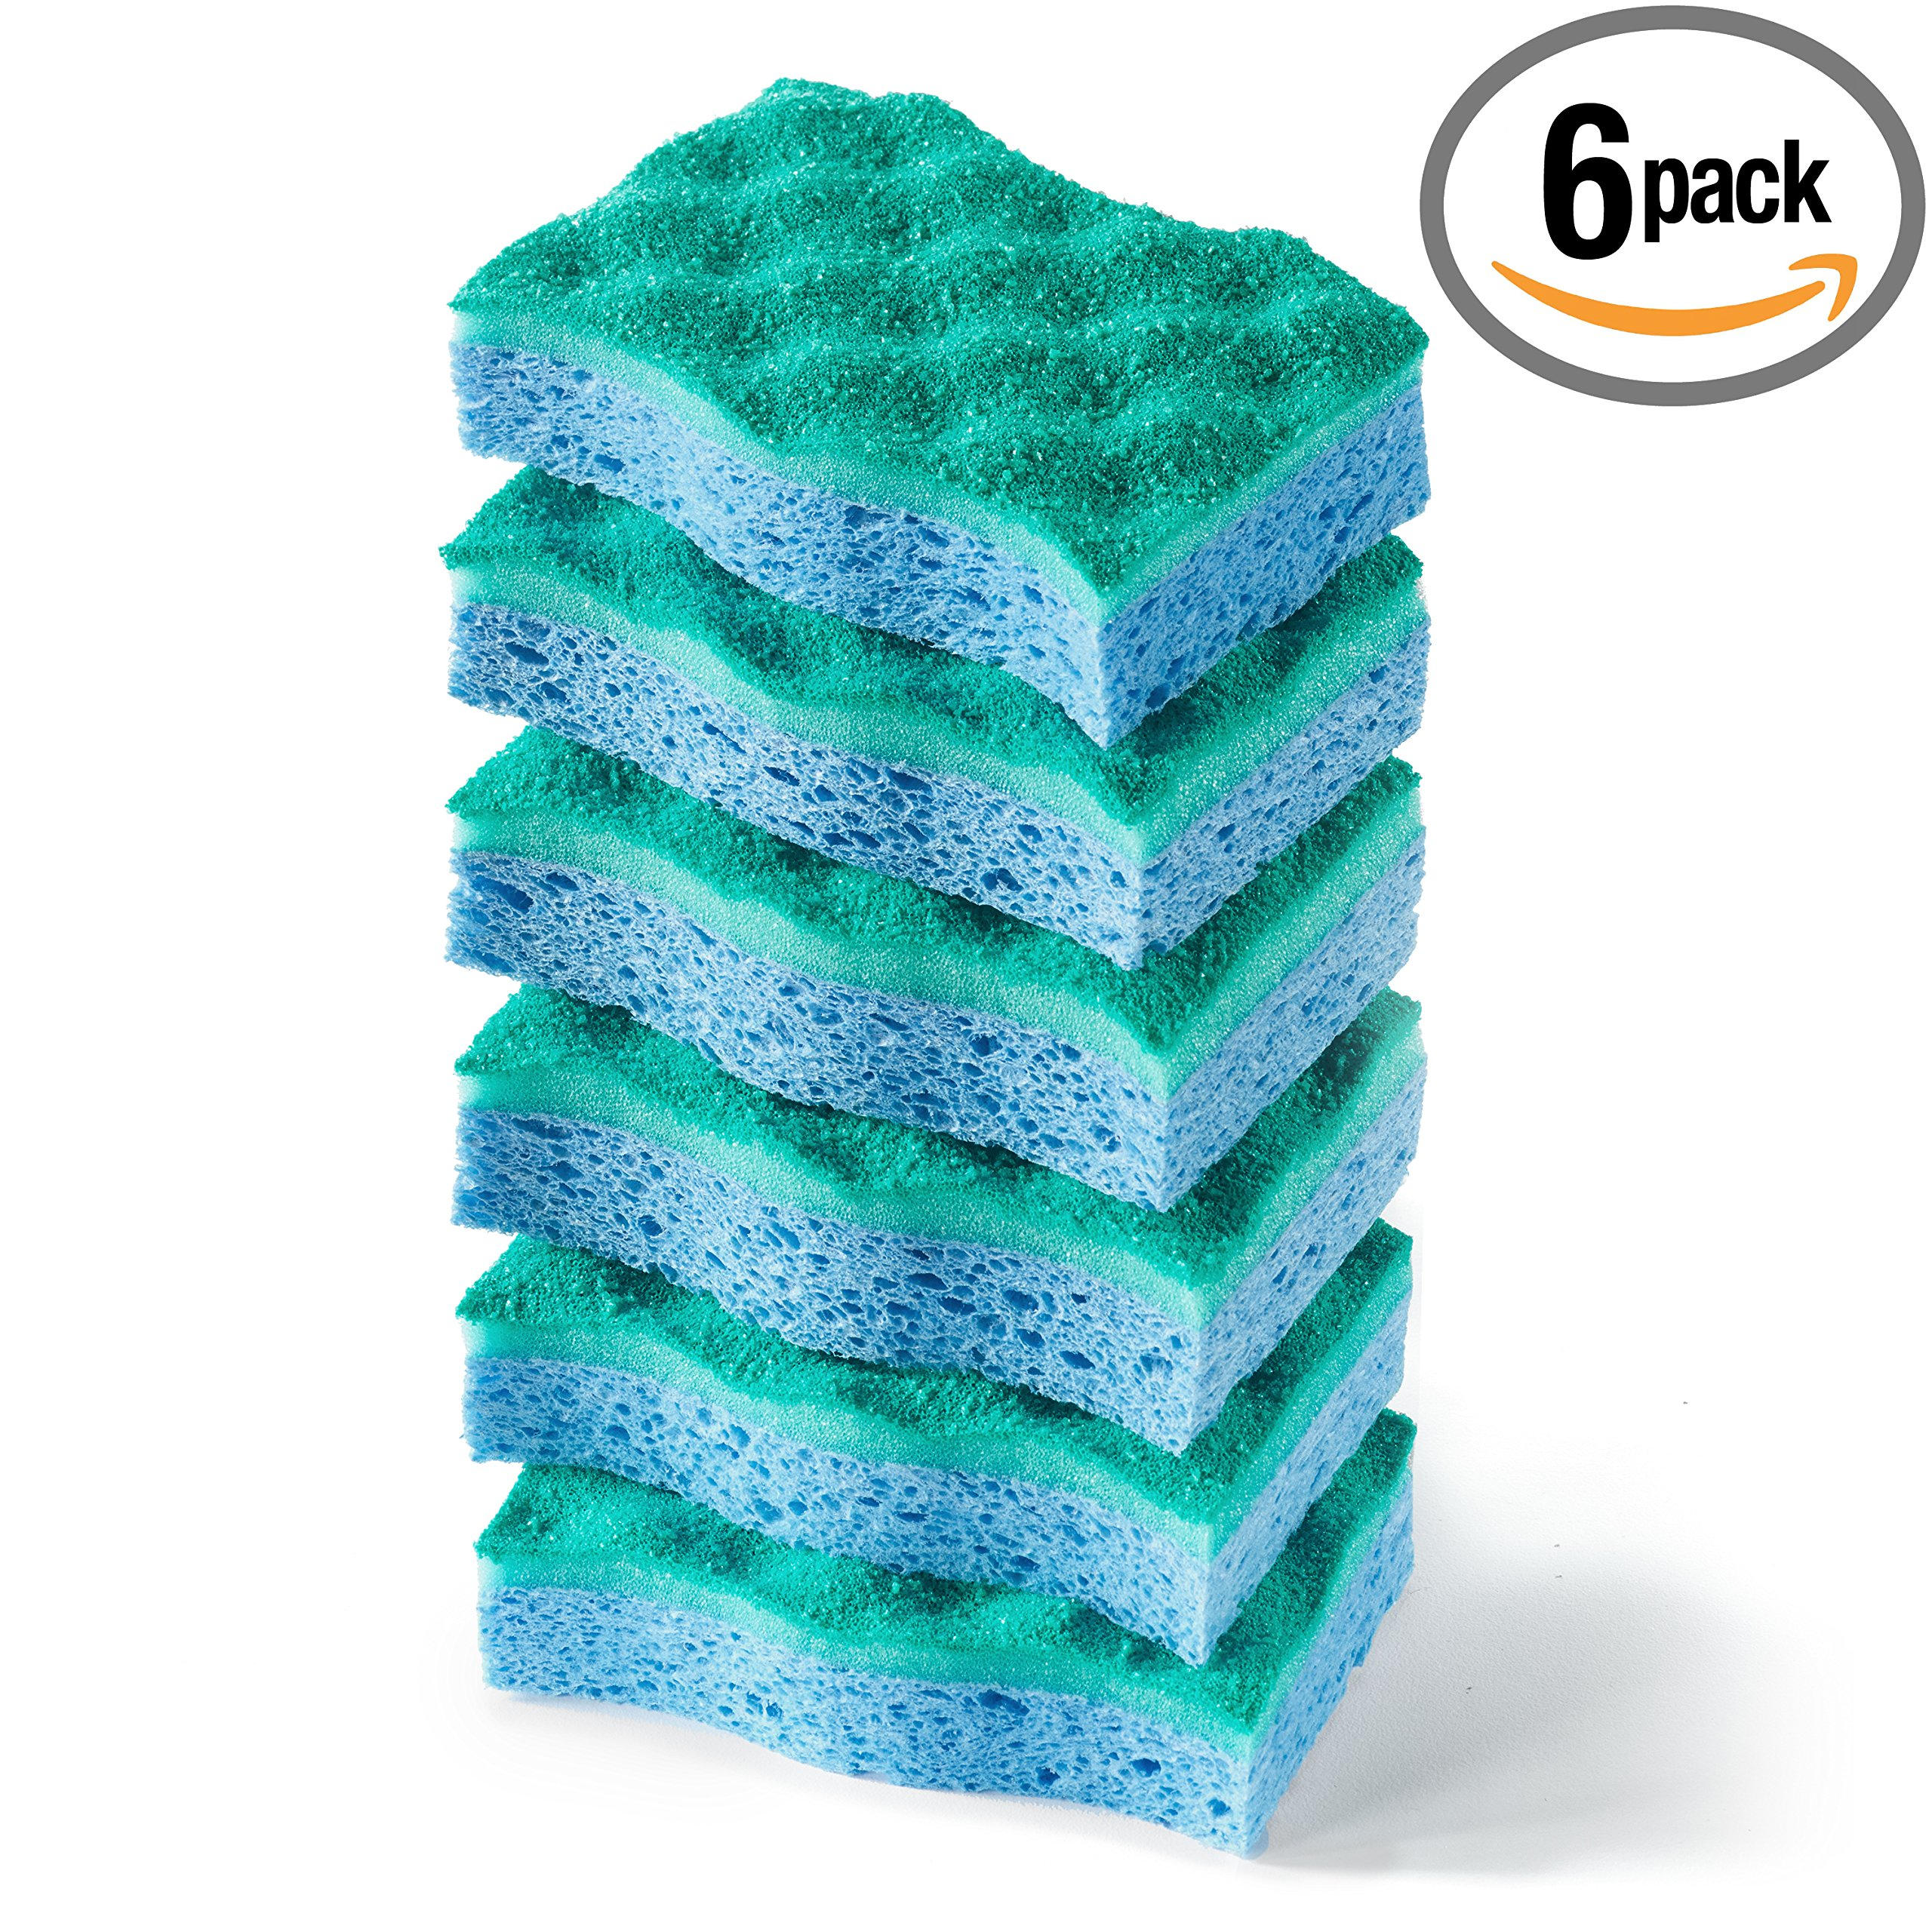 Scrub Dish Heavy Duty Sponge 6 Pack Cleaning Kitchen New